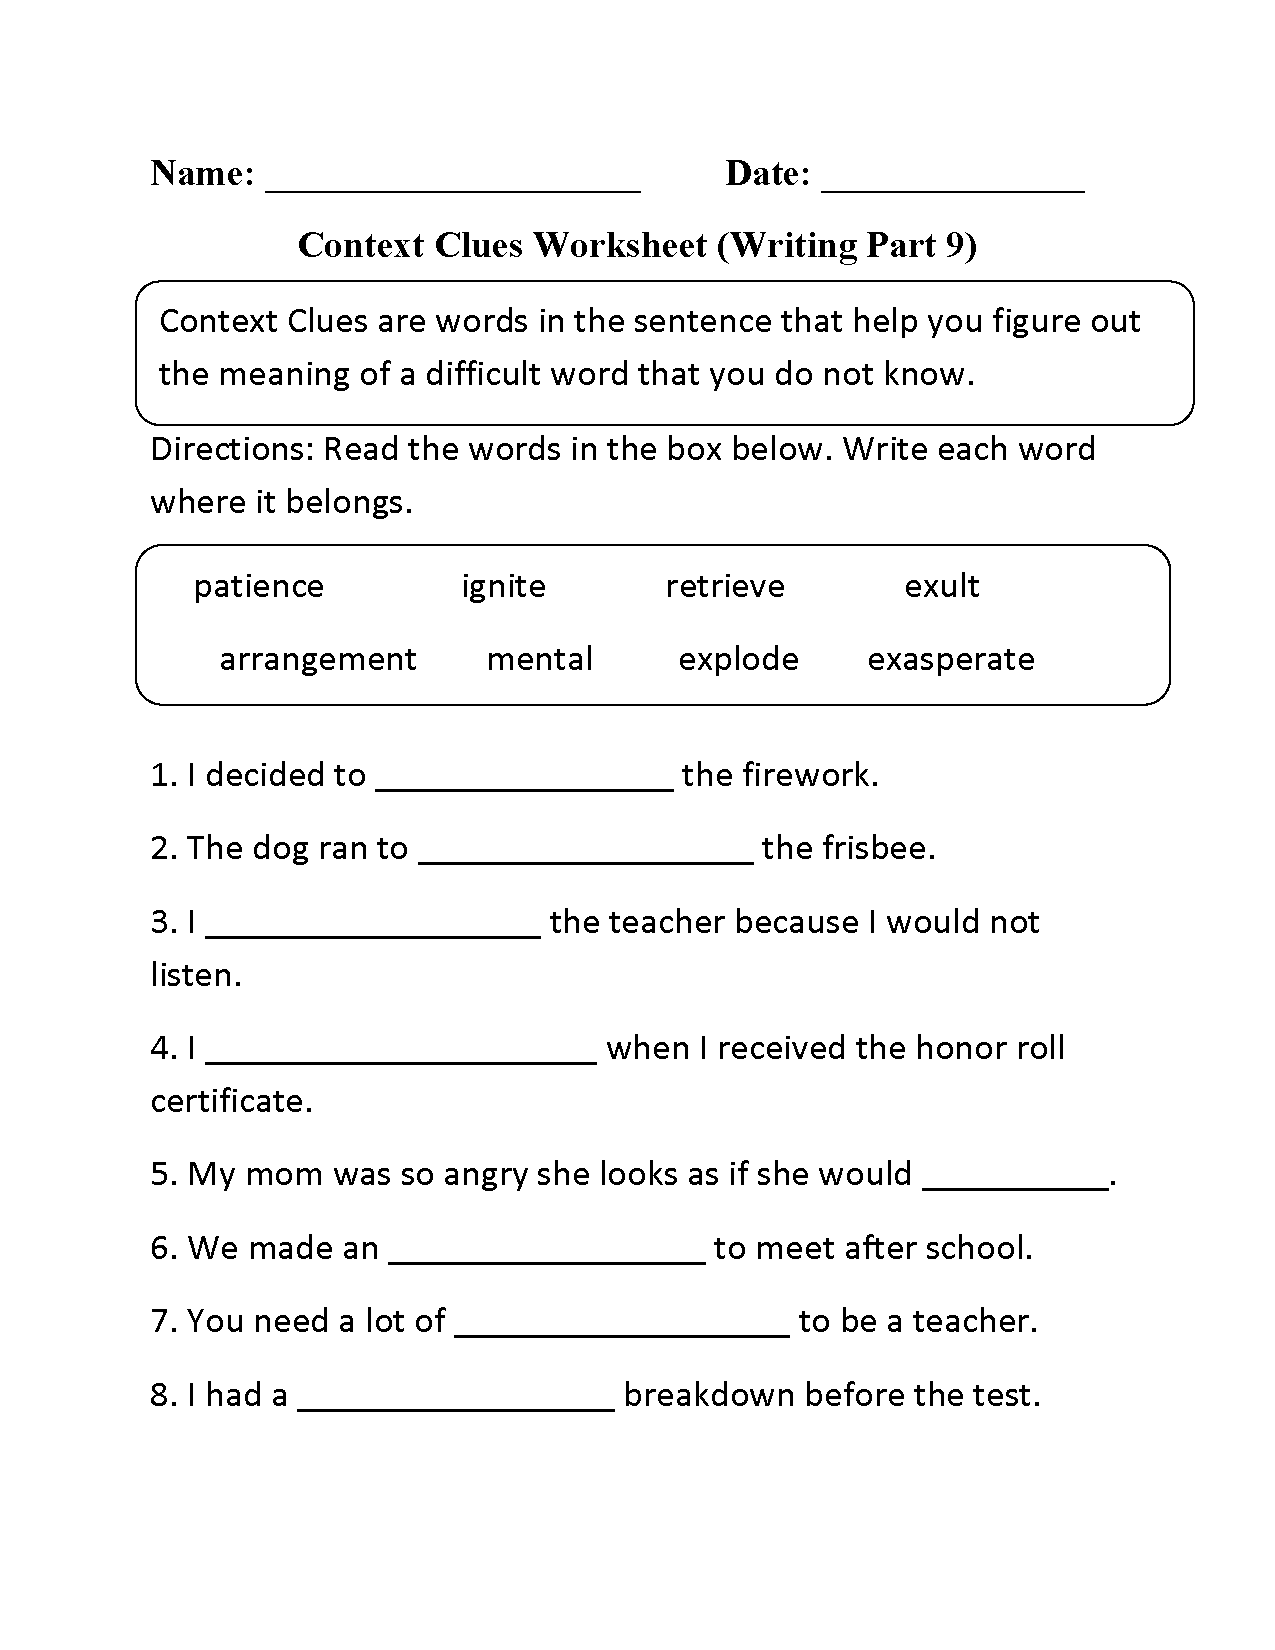 Context Clues Worksheet Middle School